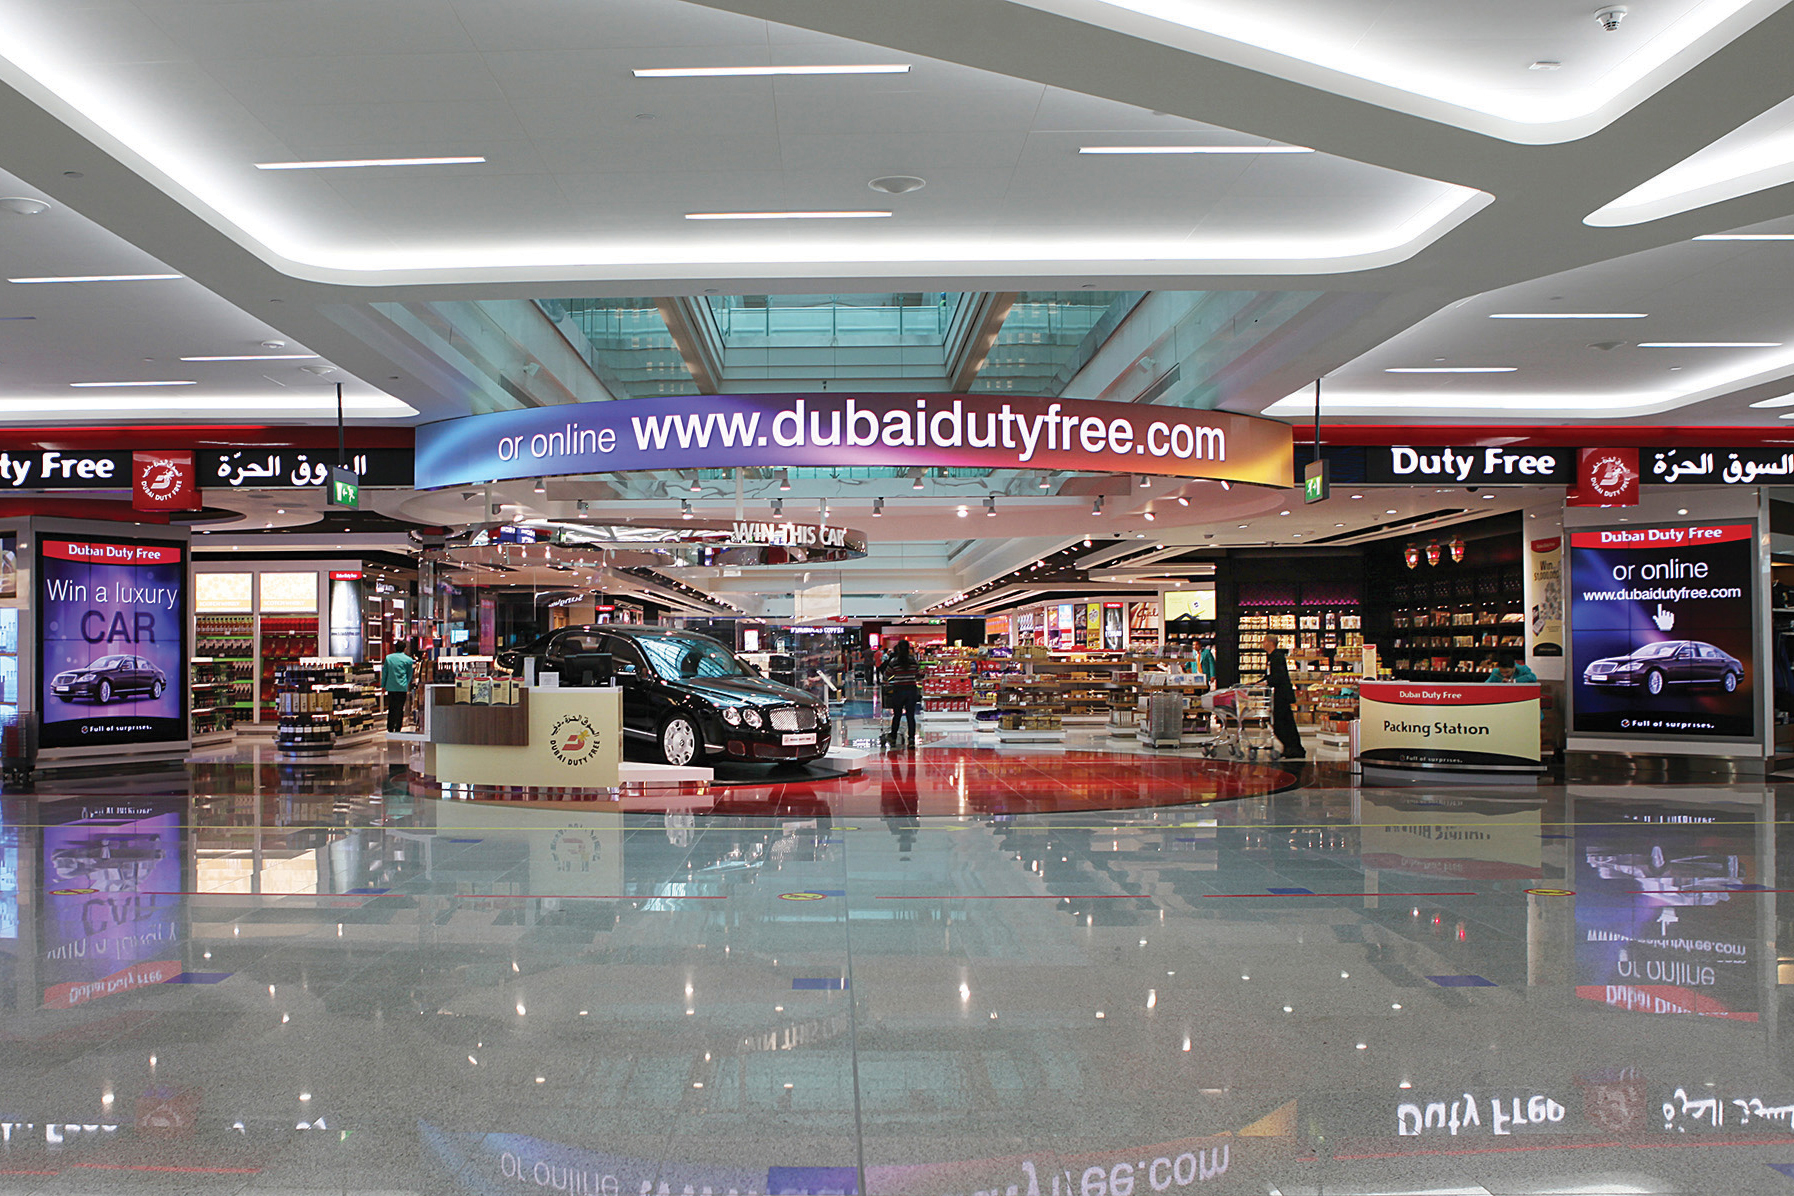 tv in dubai duty free